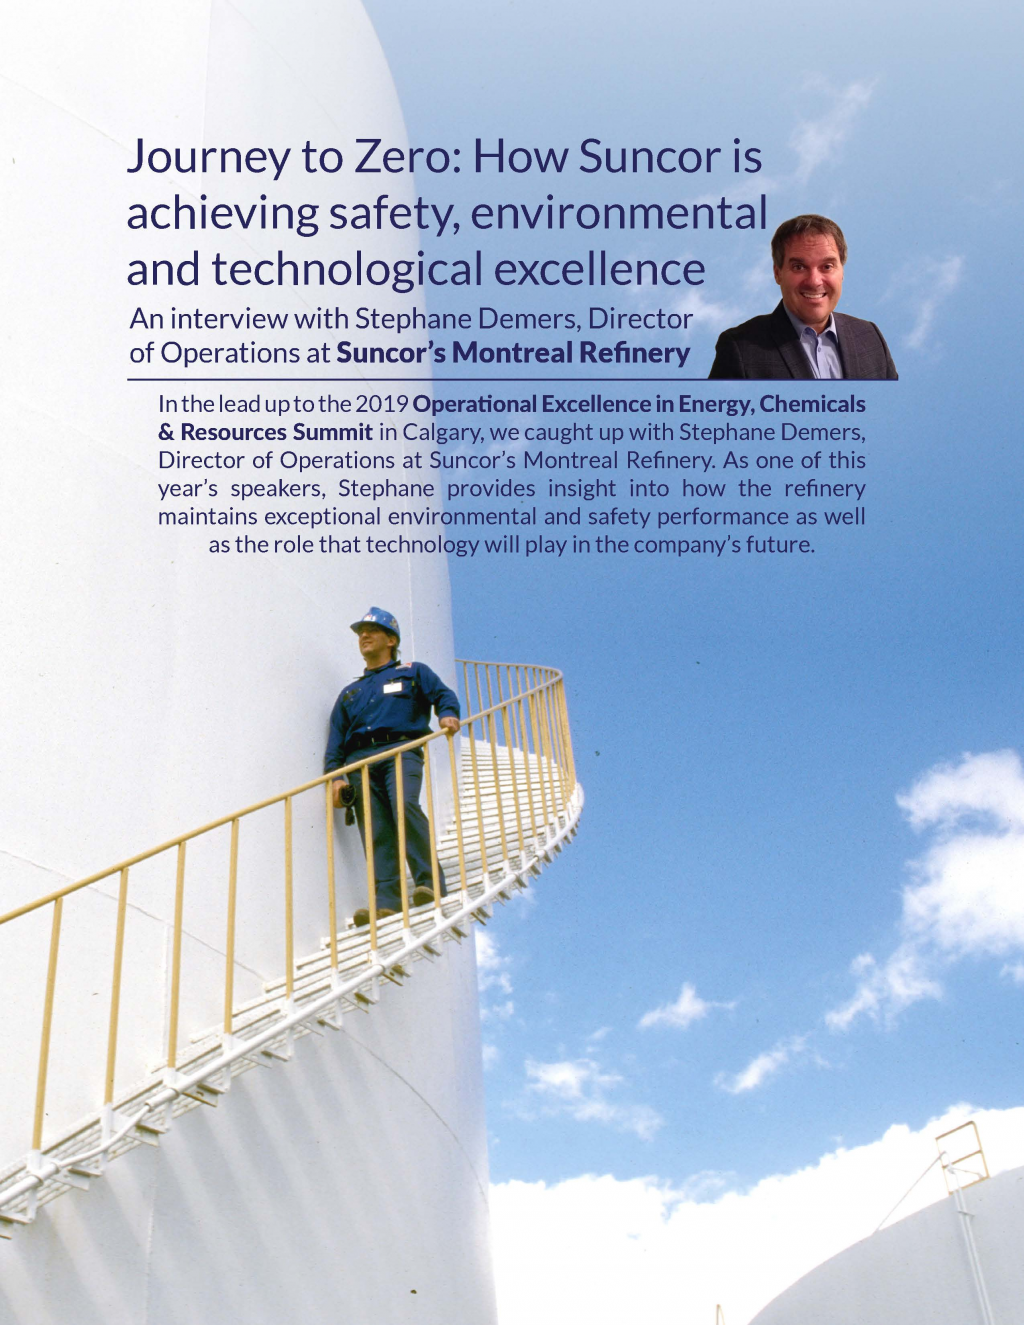 Journey to Zero: How Suncor is achieving safety, environmental and technological excellence